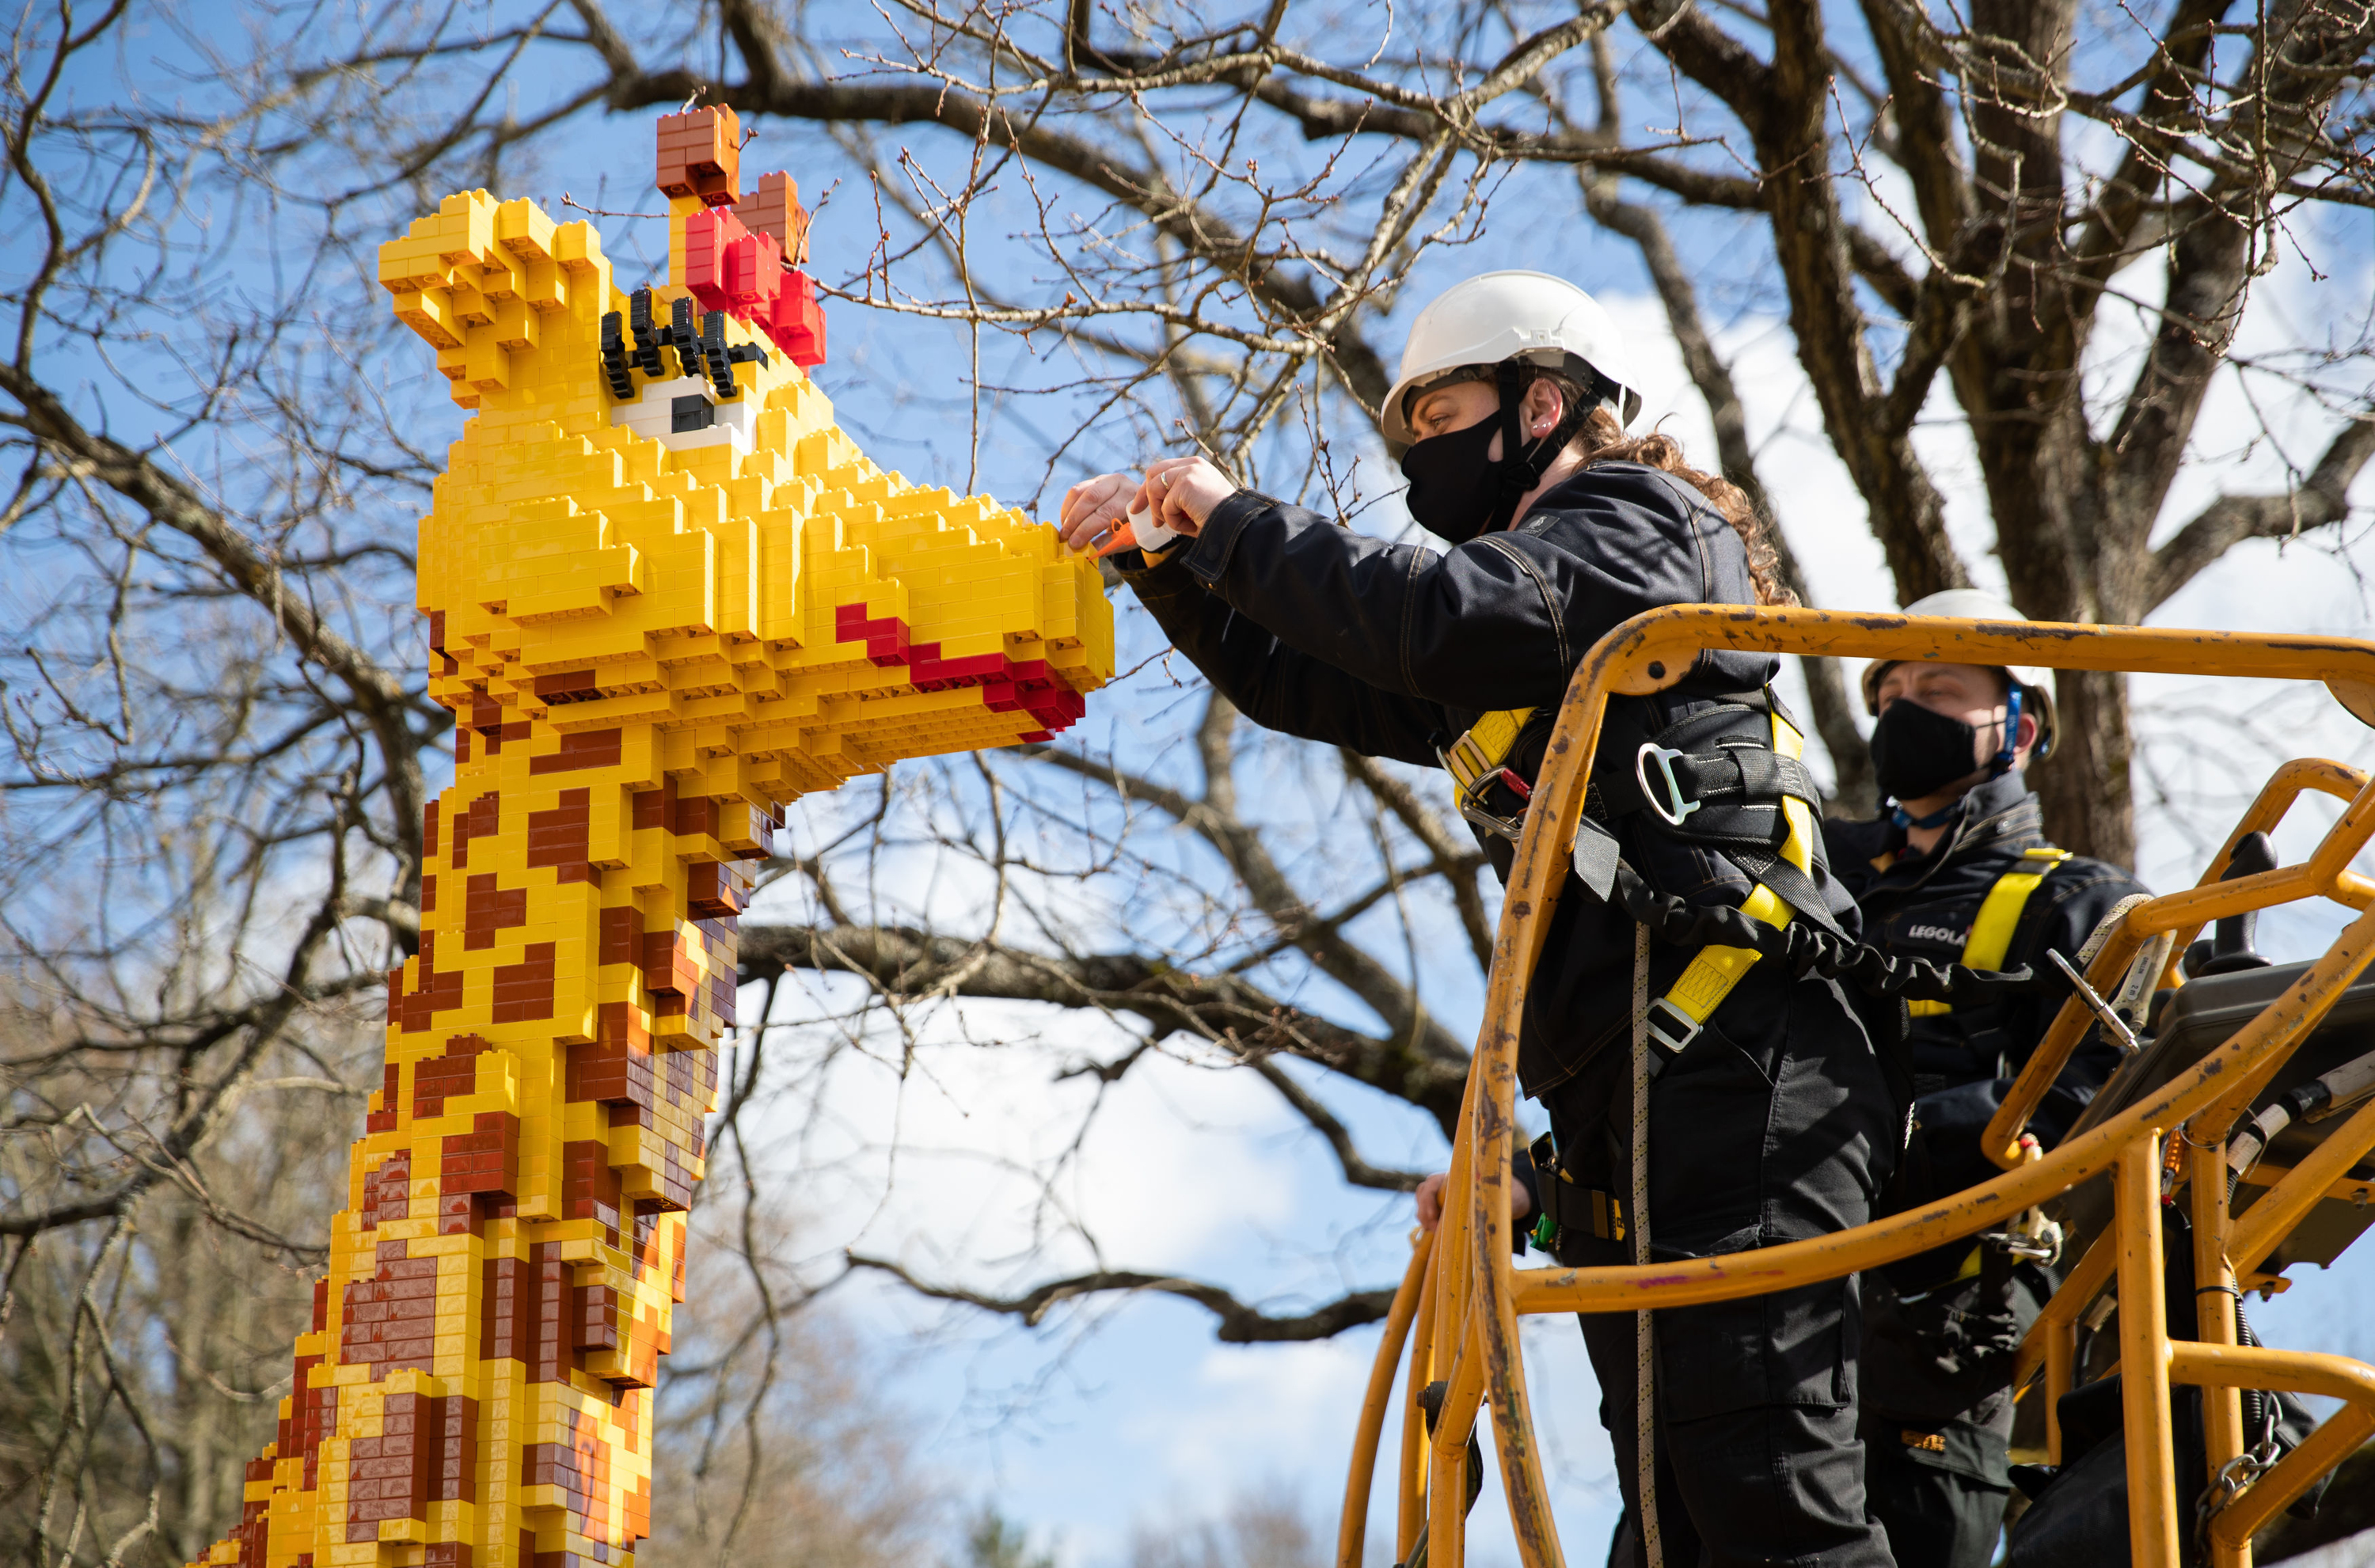 <p>RETRANSMITTING REMOVING EMBARGO Legoland Model Maker Nicola Parker adds a brick to a model of a Lego giraffe, as finishing touches are made at the Legoland Windsor Resort as they prepare to welcome back visitors on 12th April after the easing of lockdown restrictions. Picture date: Tuesday April 6, 2021.</p>